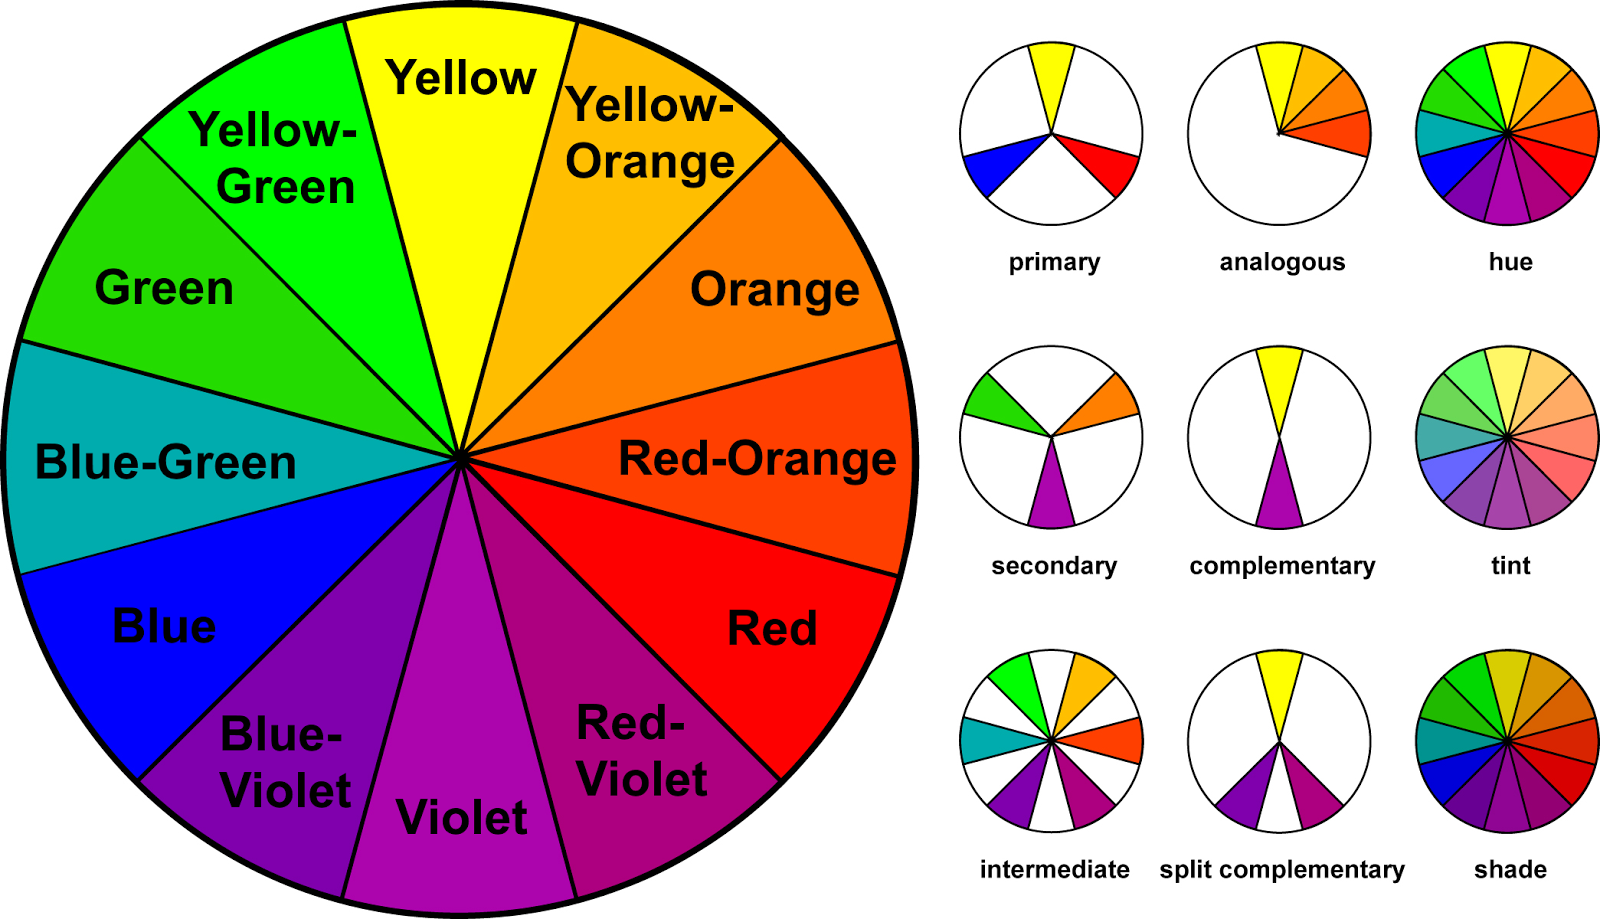 5 Secrets Every Photographer Should Learn | Color wheels, Wheels